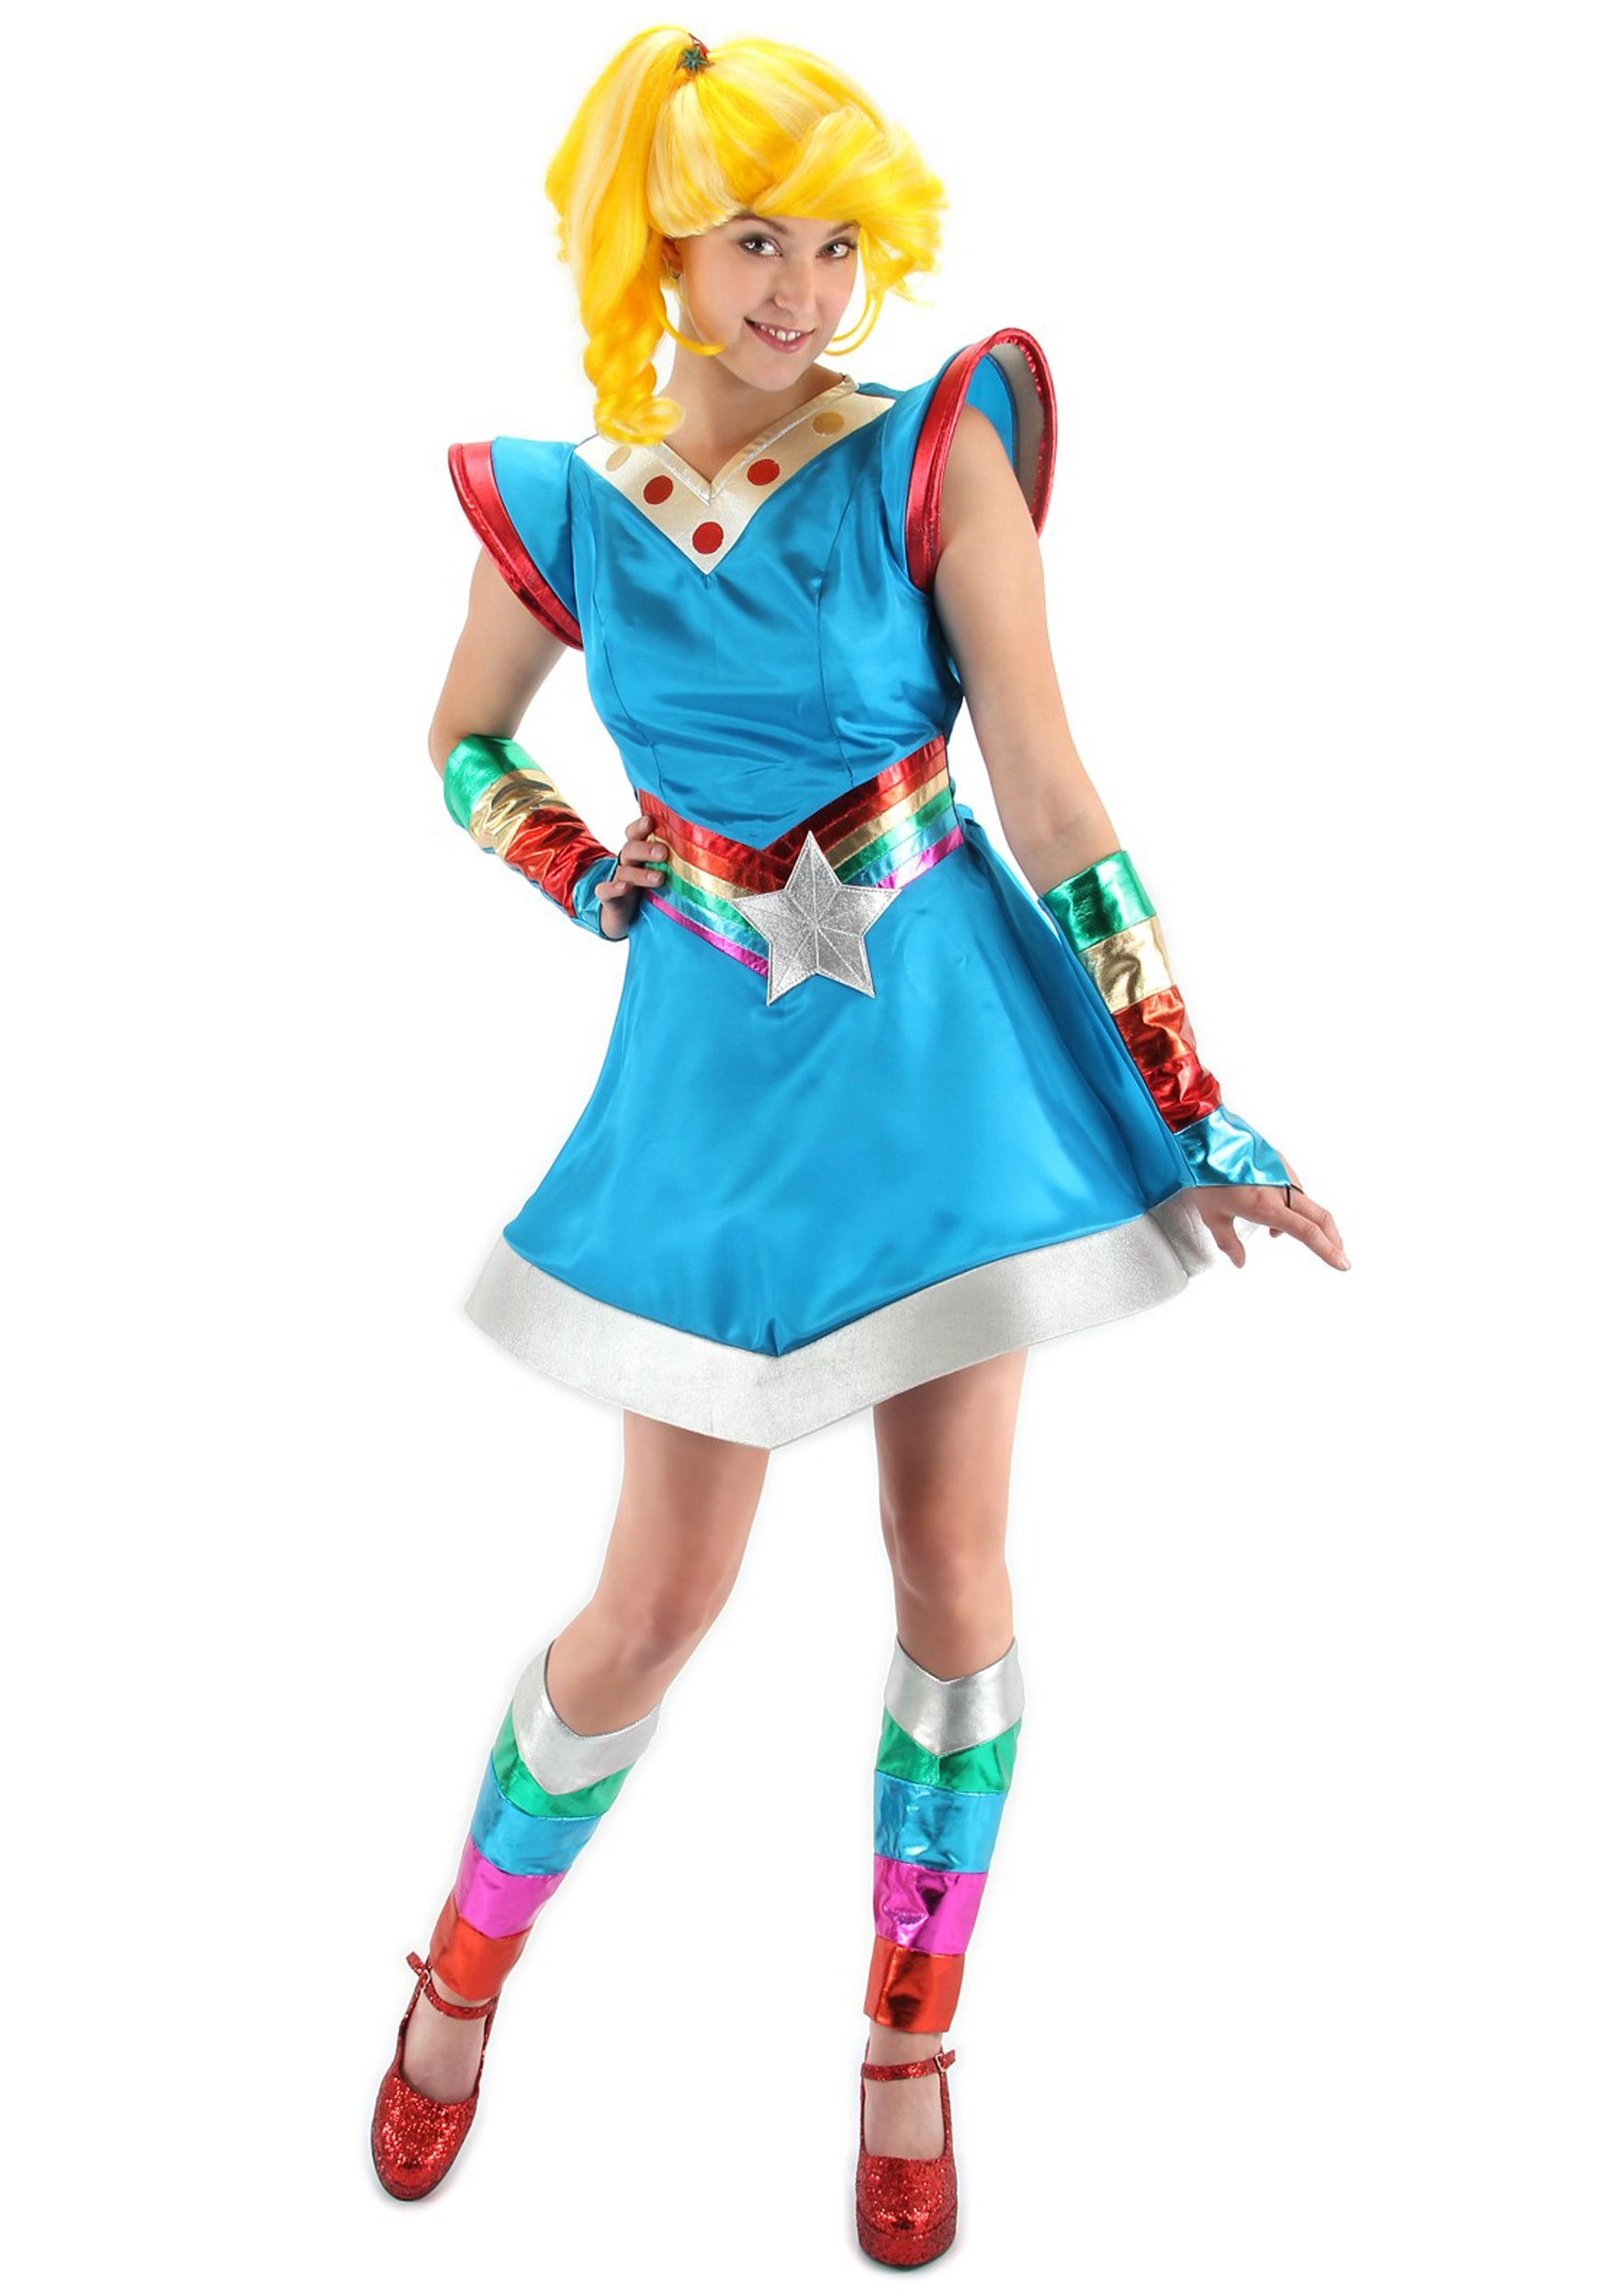 Adult Rainbow Brite Costume  sc 1 st  Halloween Costumes & Adult Rainbow Brite Costume - Halloween Costume Ideas 2018